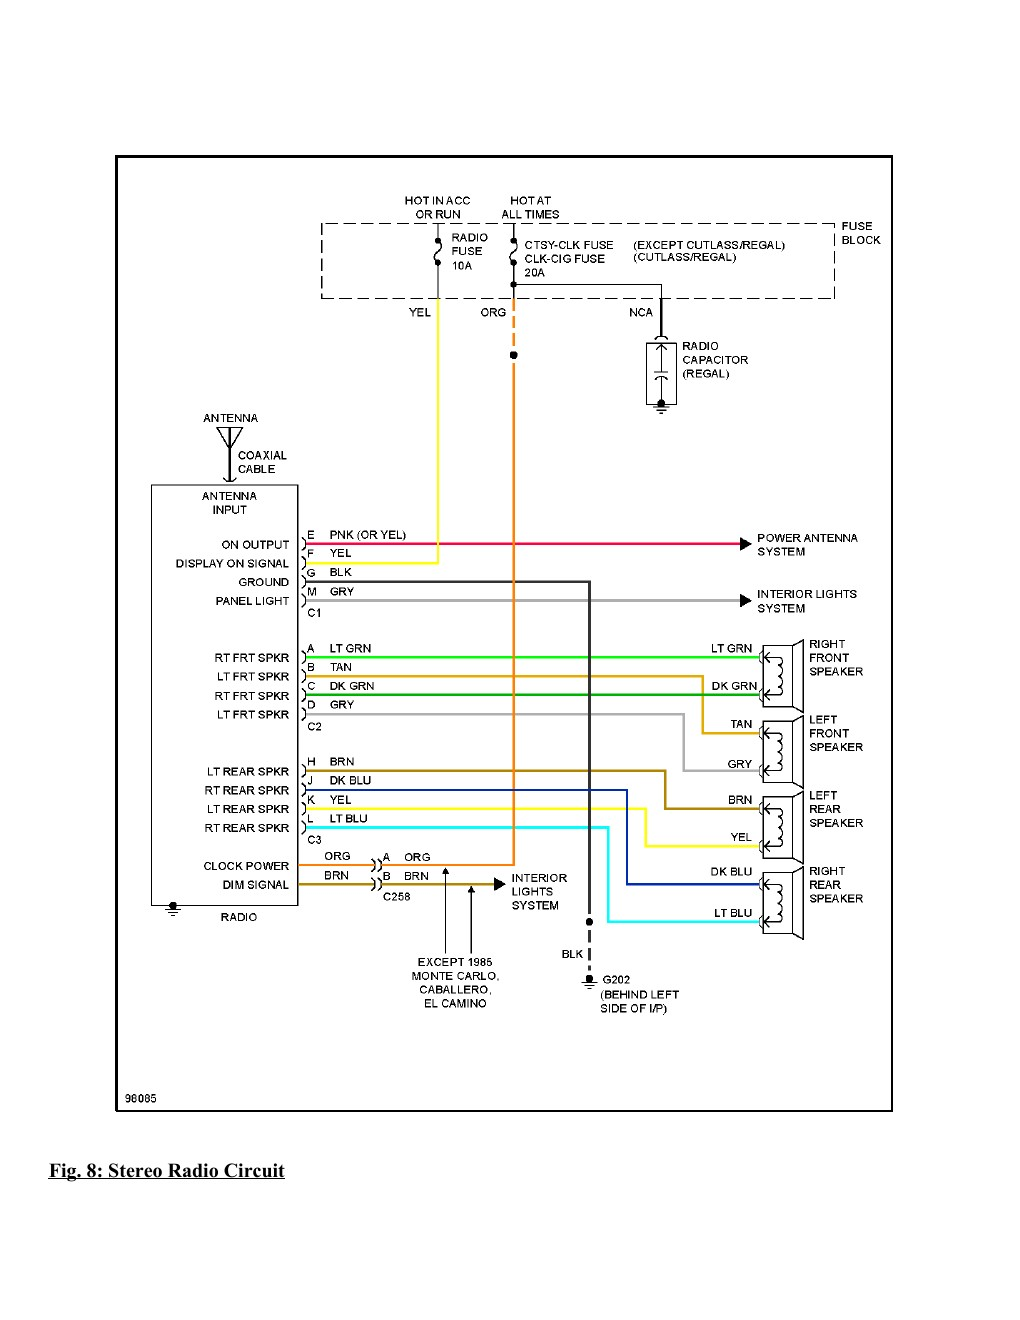 1995 Chevrolet Monte Carlo SS Complete Wiring Diagram Part